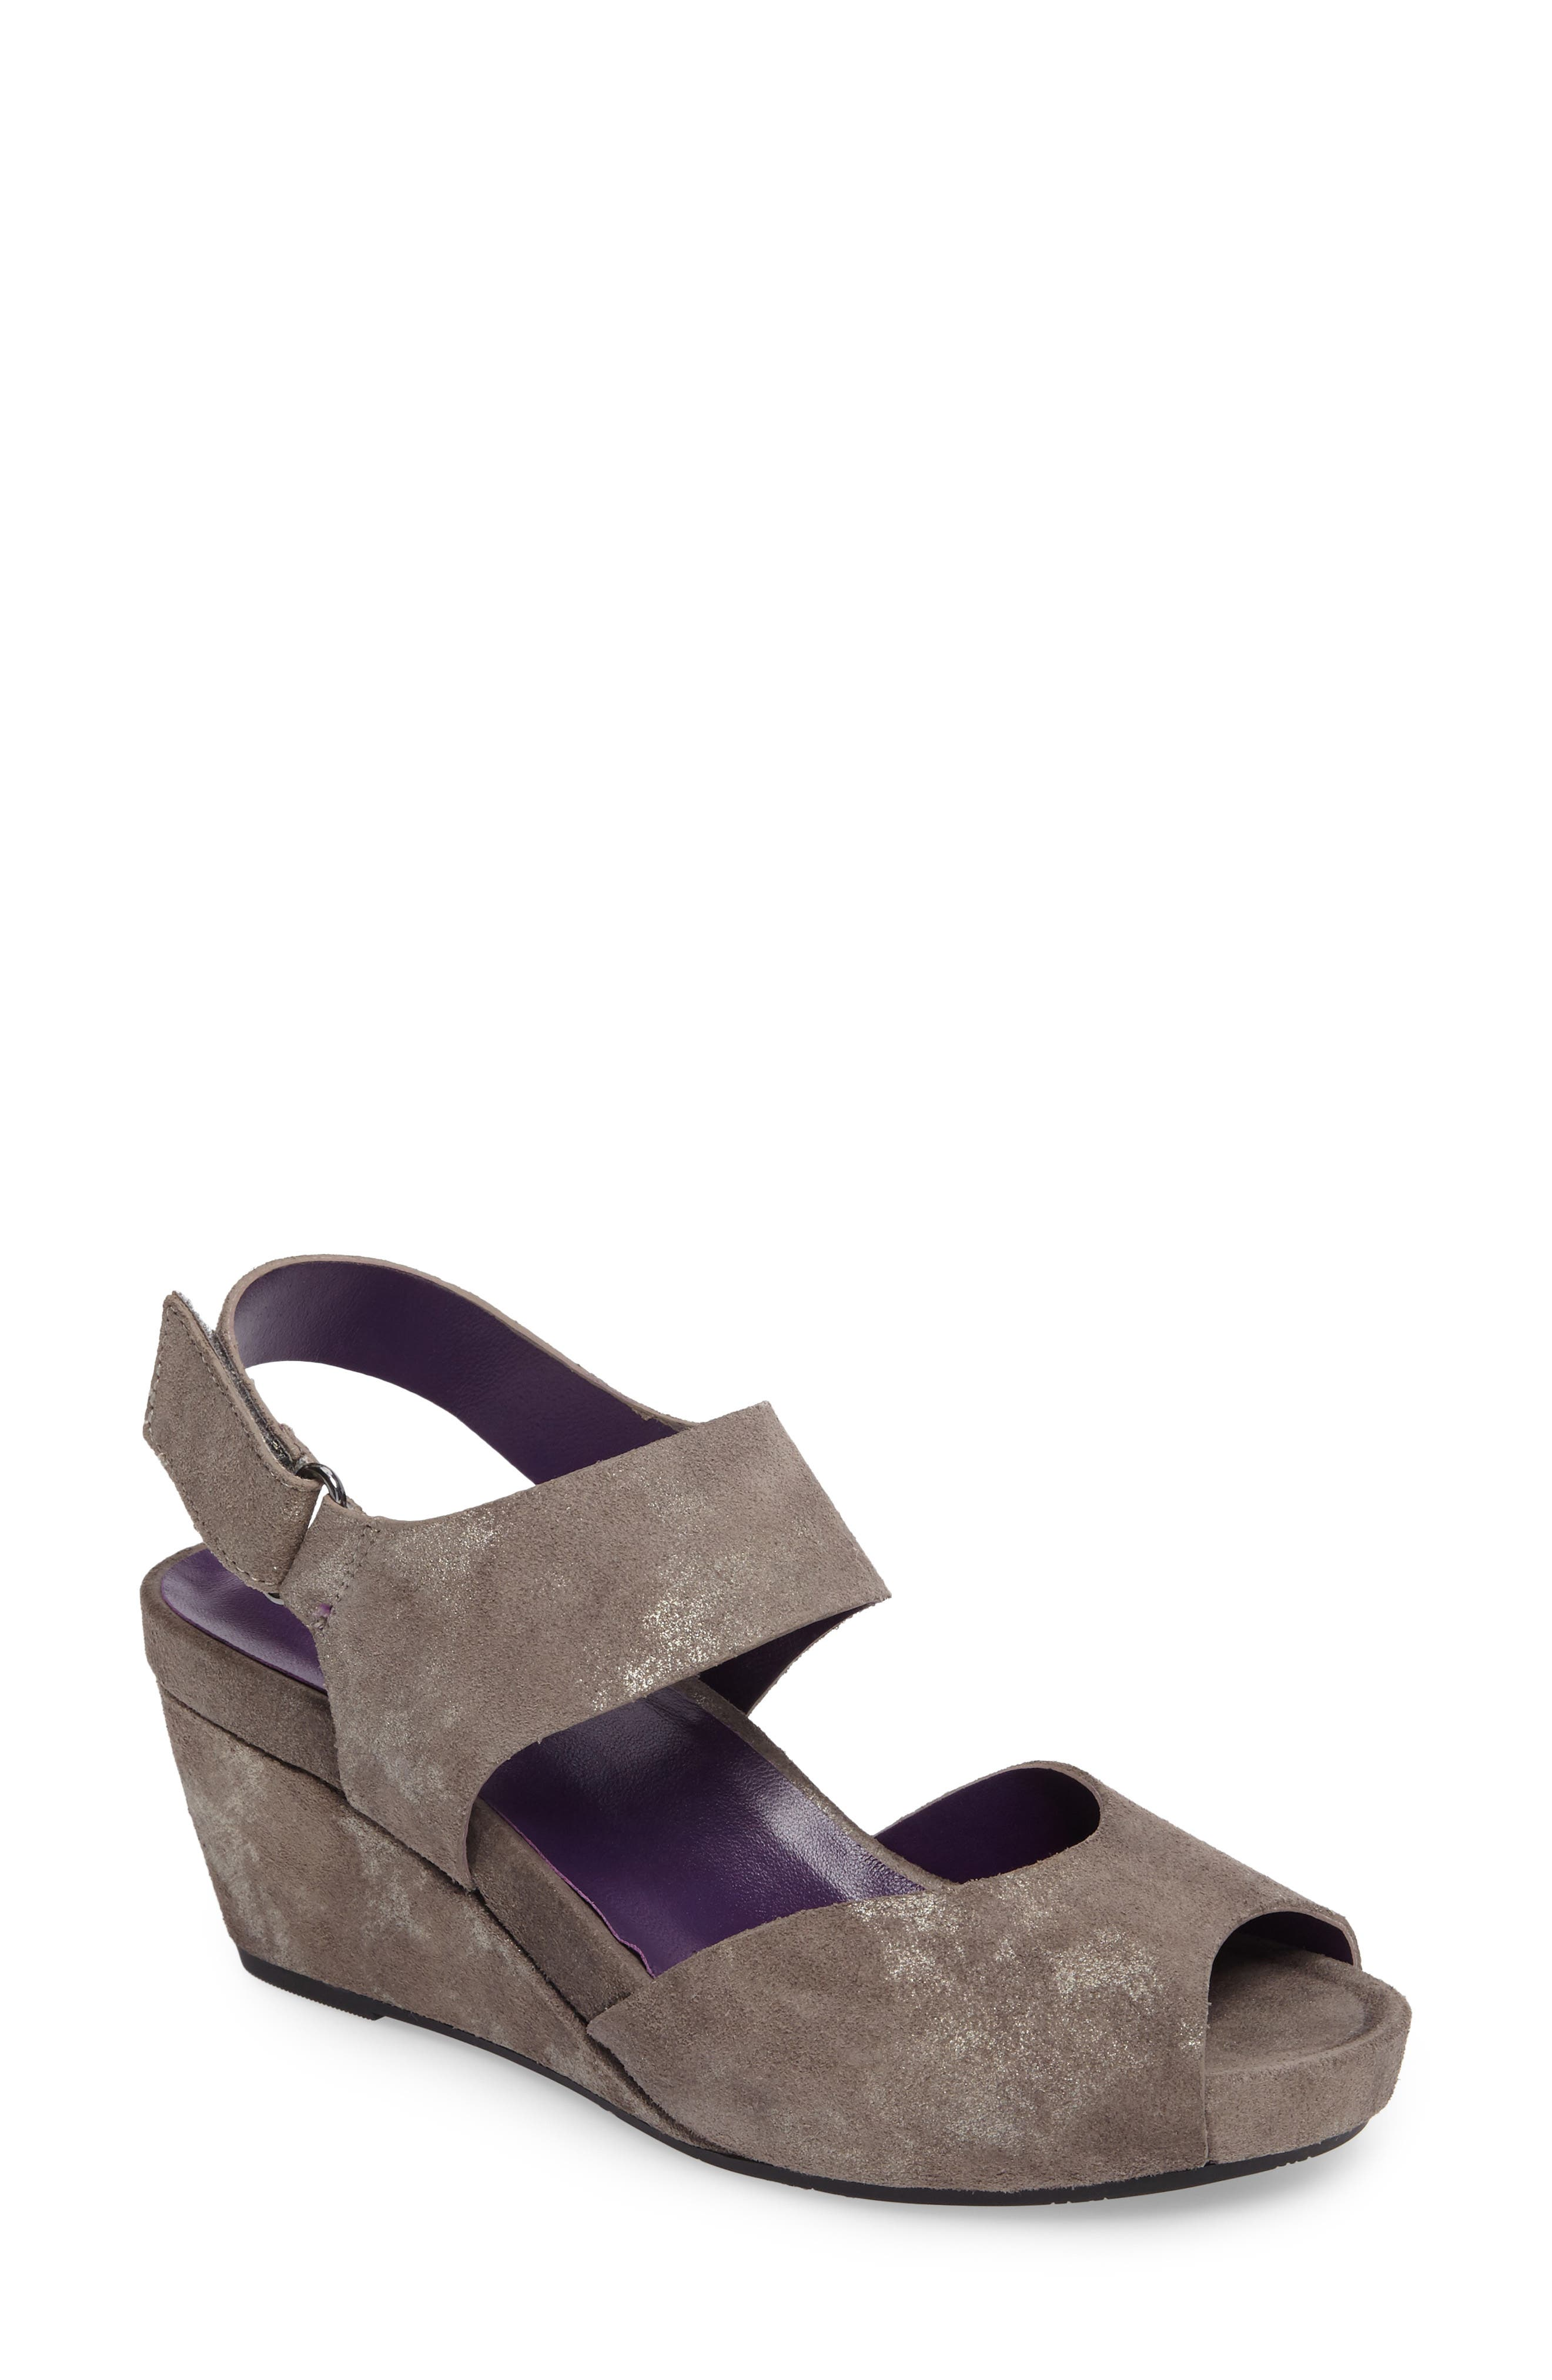 Ilex Wedge Sandal,                         Main,                         color, Taupe Suede